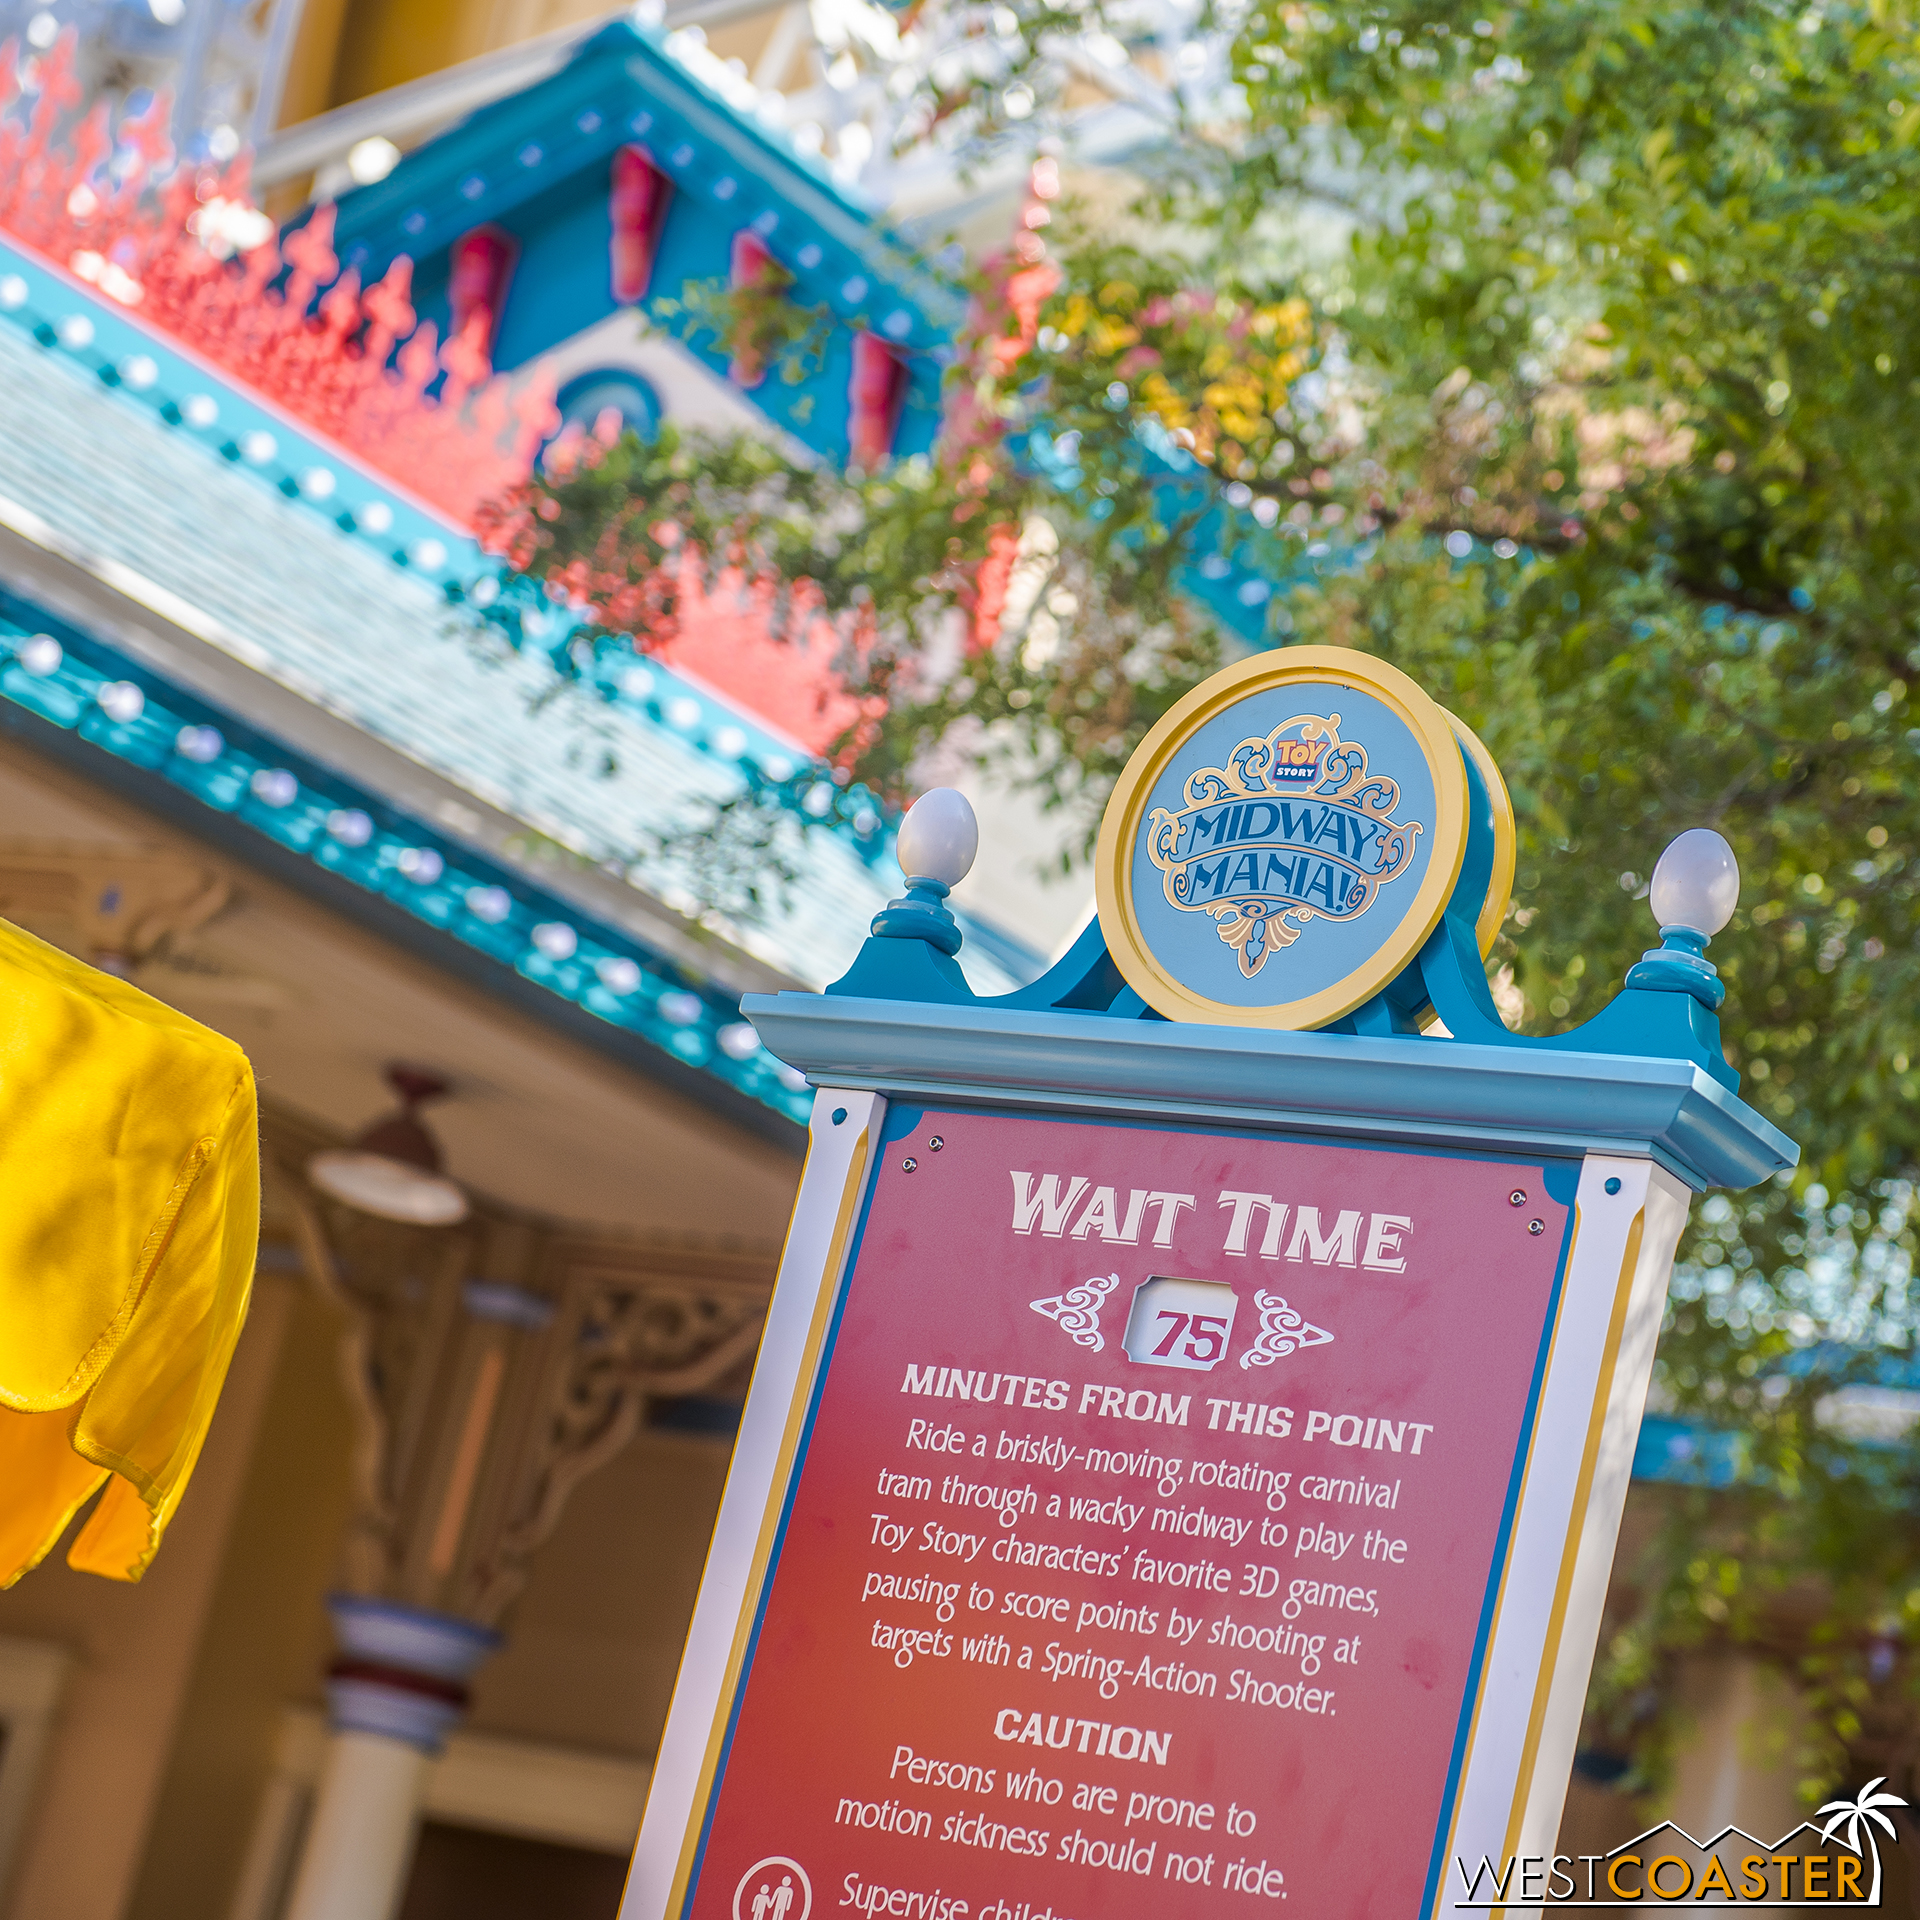 Toy Story is getting longer waits now too, probably partly from the Pixar Pier activity and partly from the addition of FastPass.